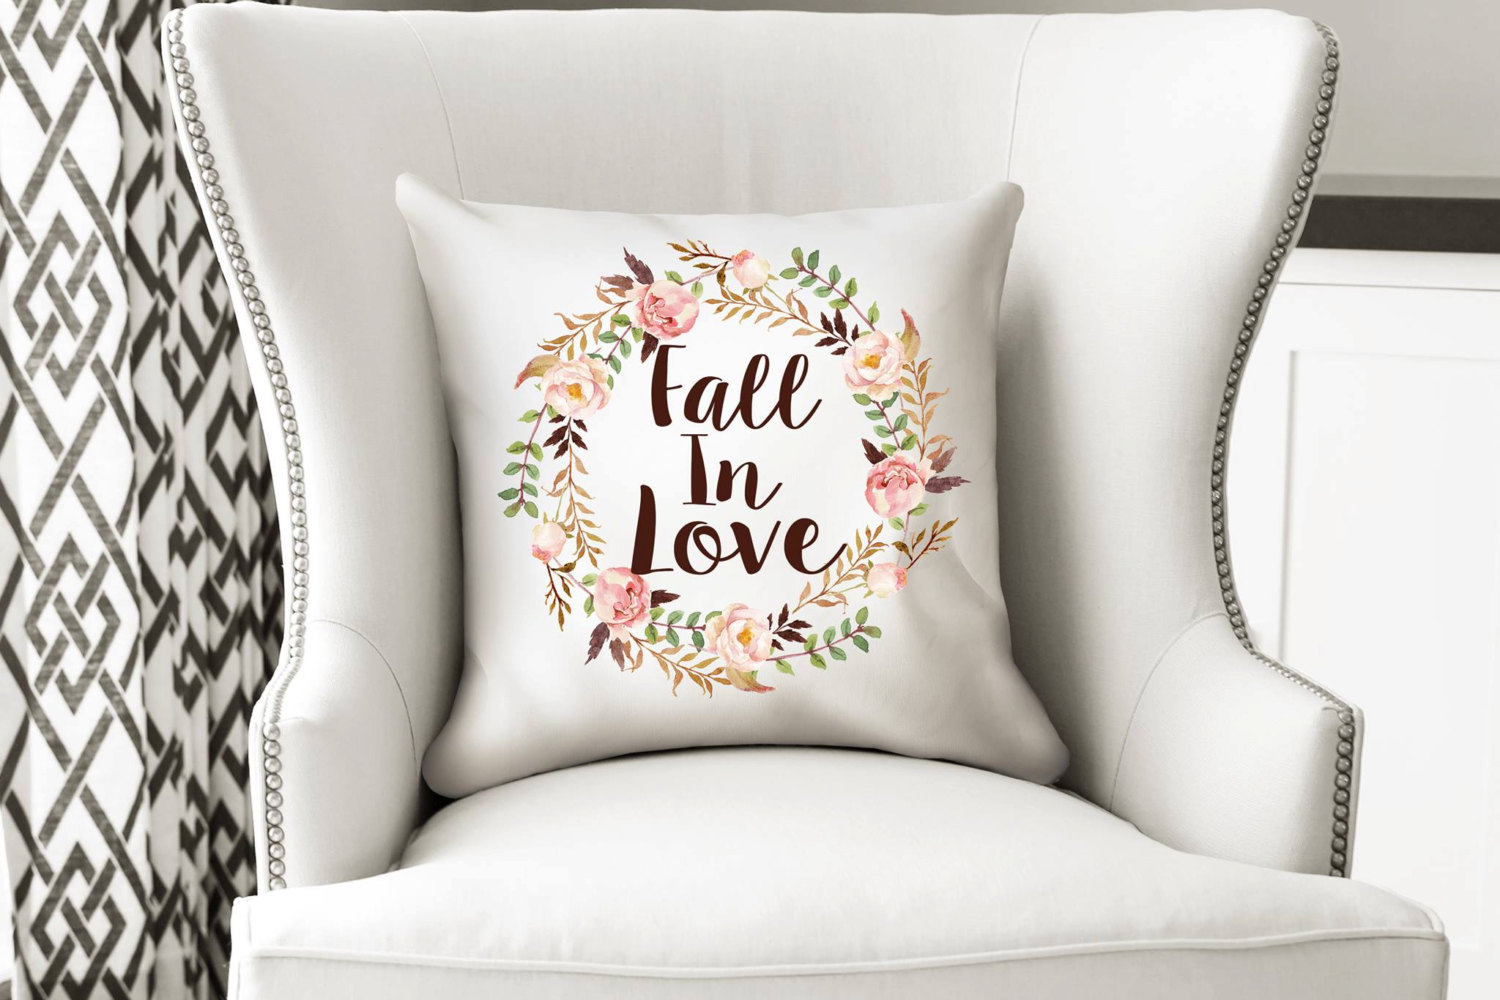 fall-in-love-pillows